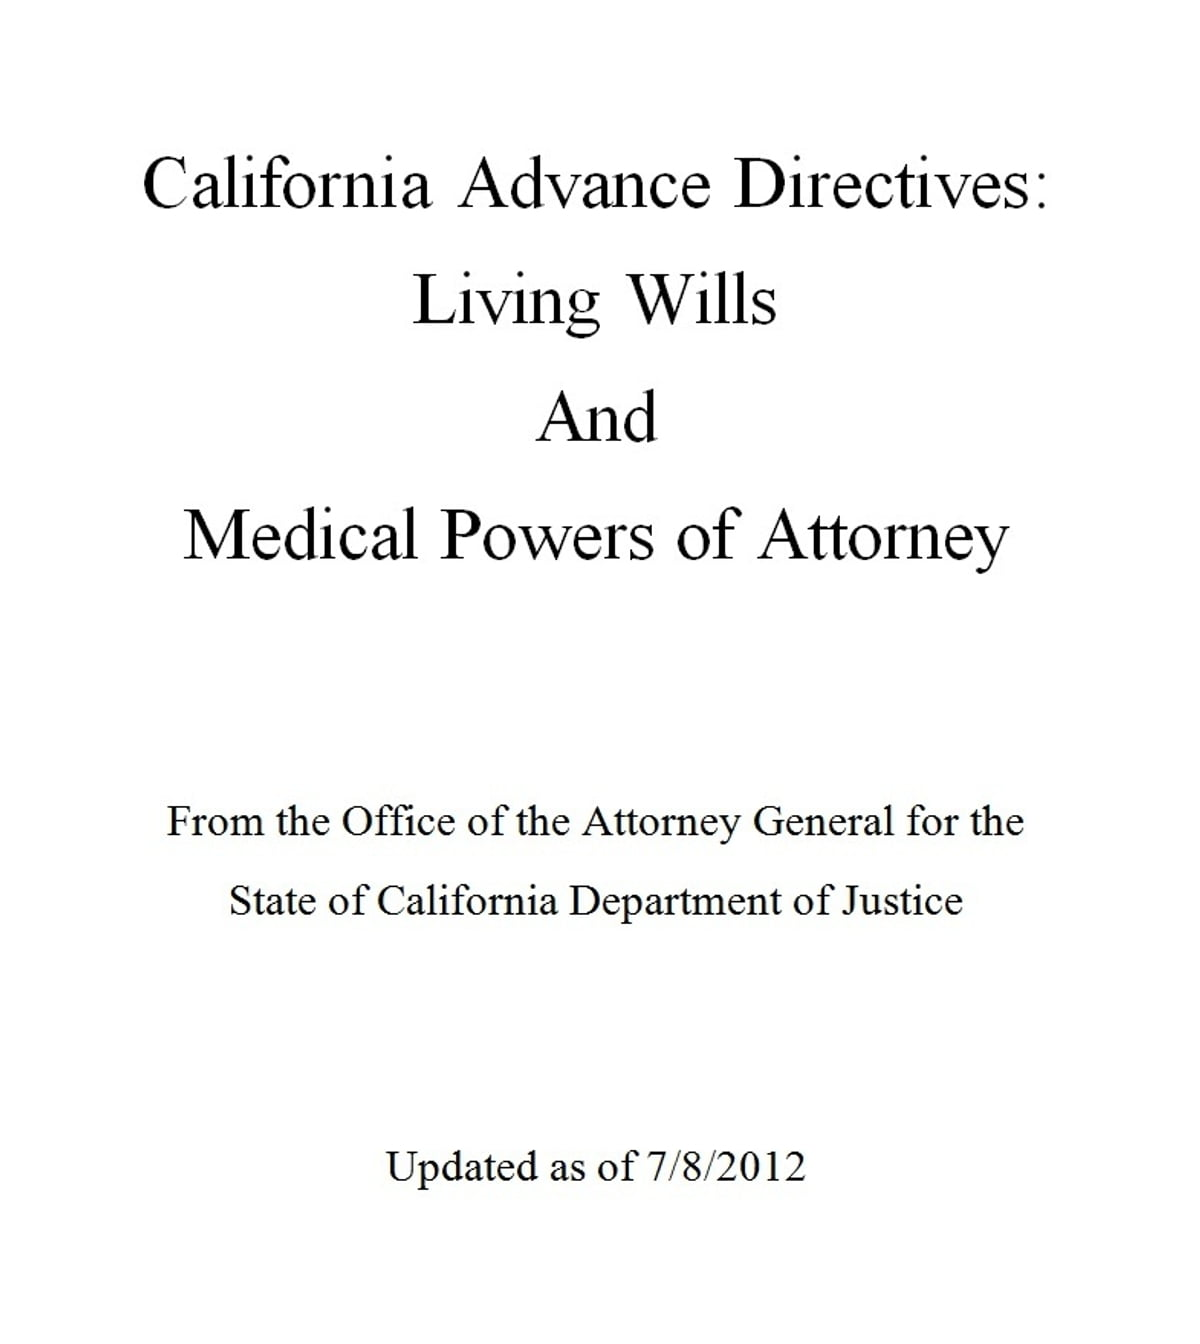 California Advance Directives Living Will And Medical Power